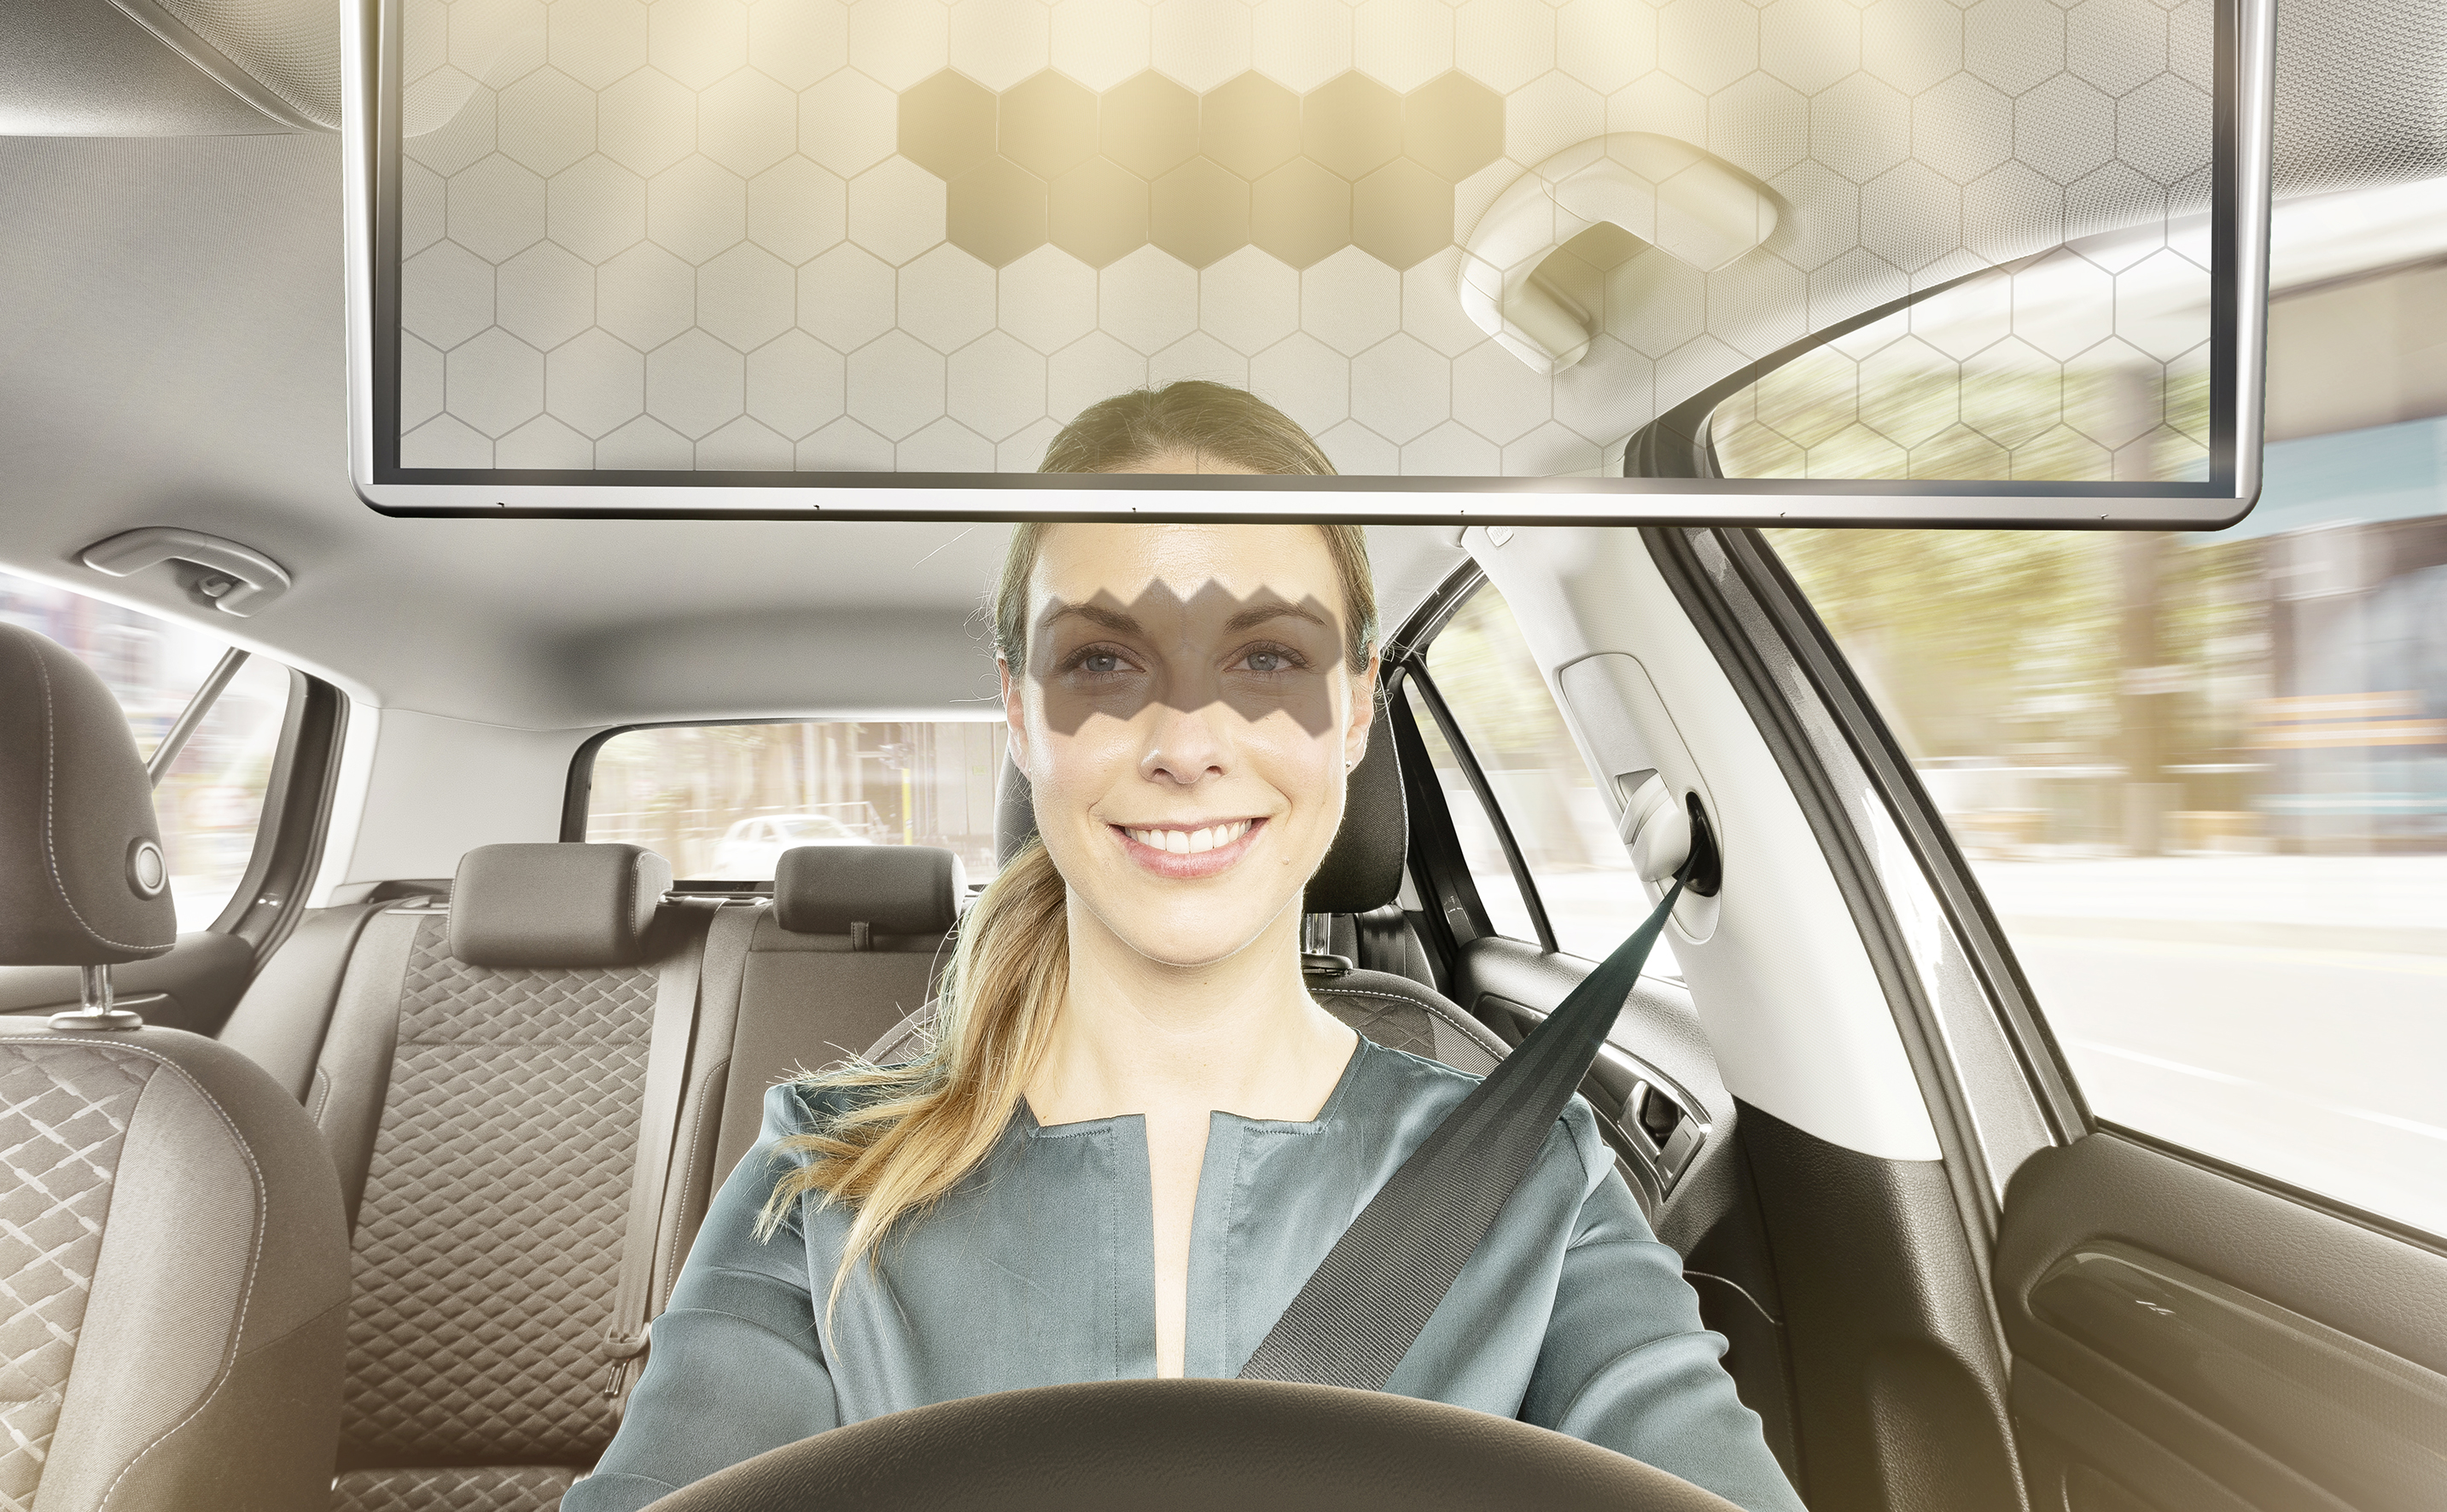 Bosch's new Virtual Visor greatly improves driver safety and comfort